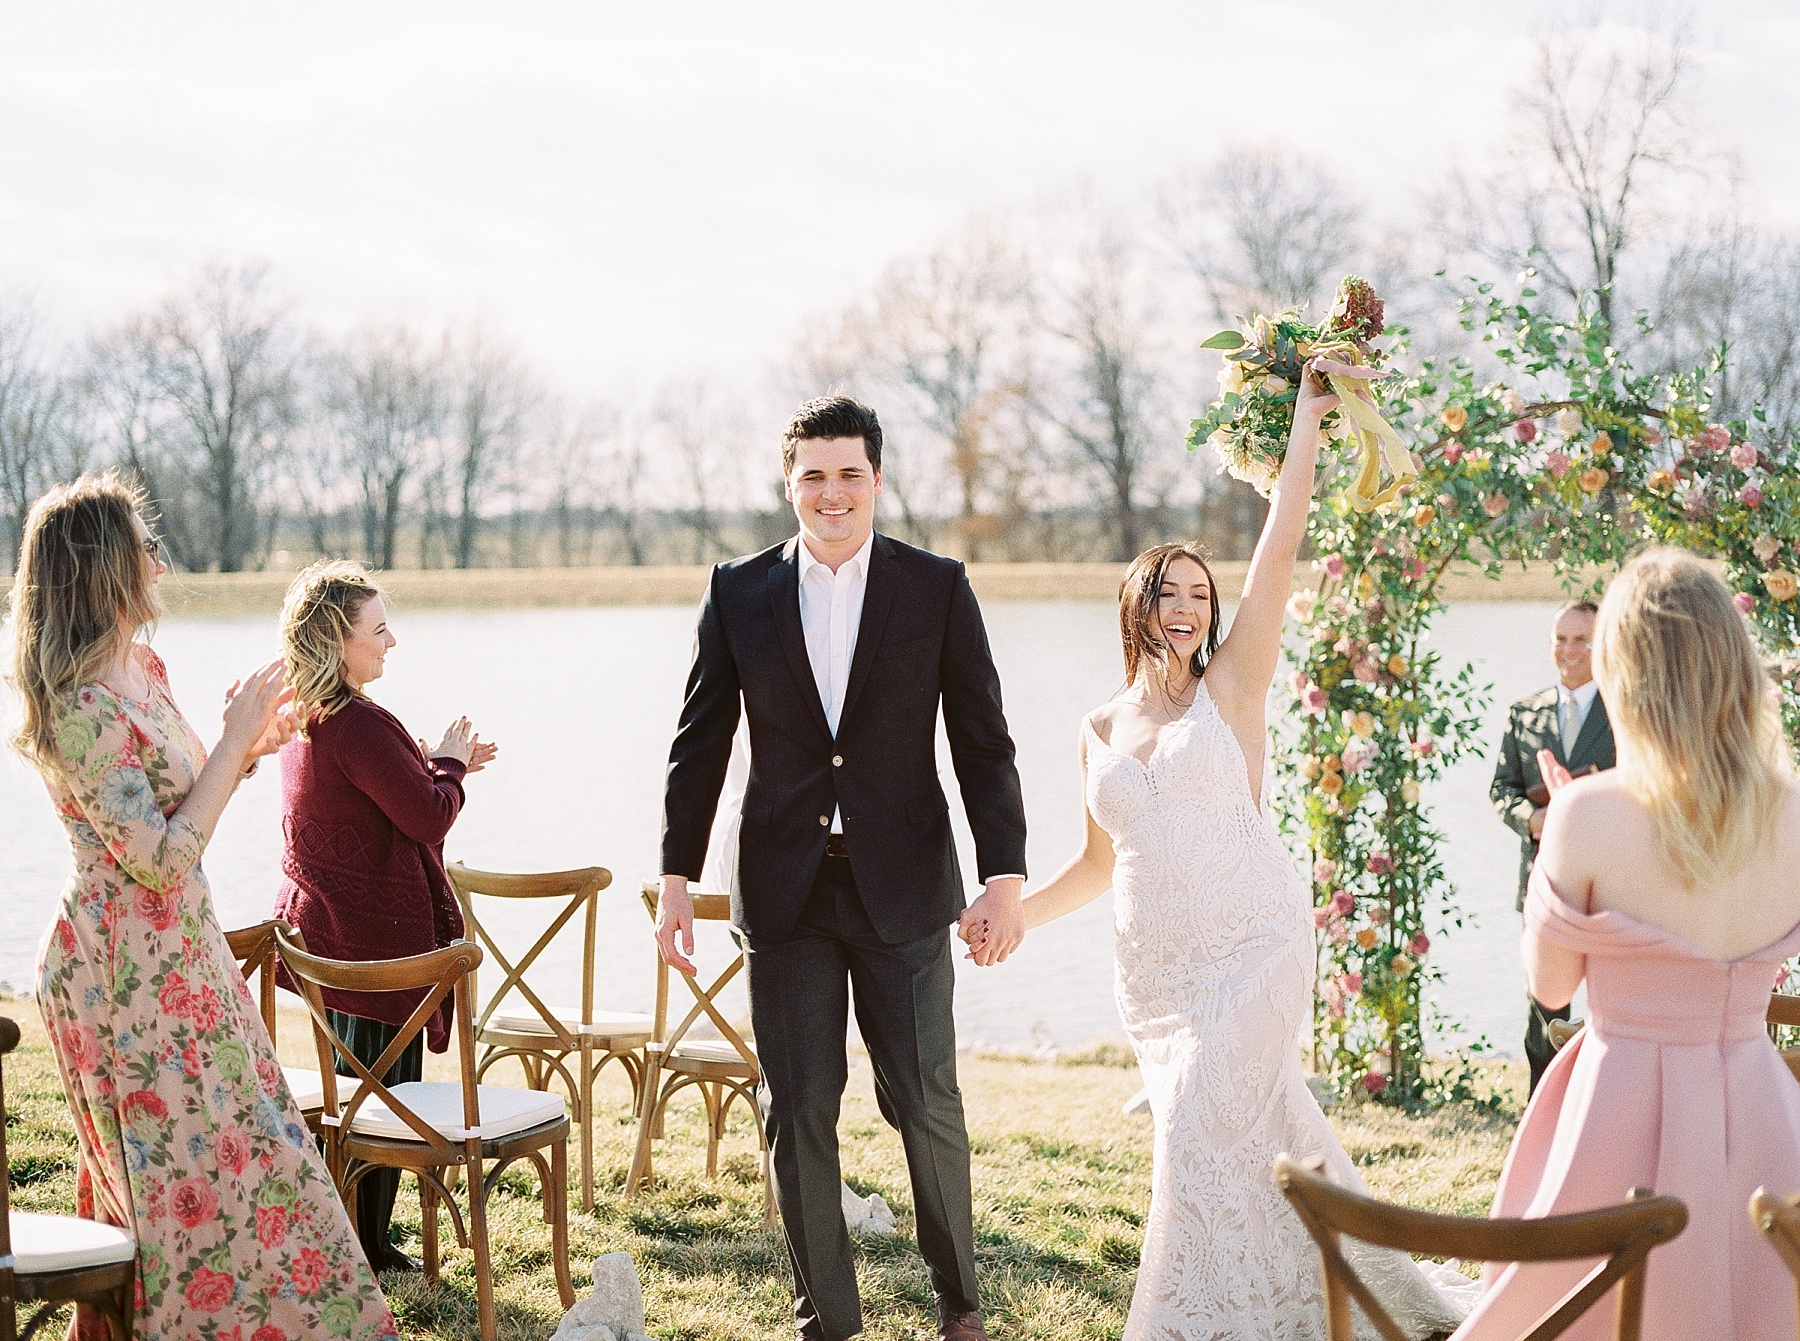 Intimate Lakeside Elopement at Emerson Fields All White Wedding Venue by Kelsi Kliethermes Photography Best Missouri and Maui Wedding Photographer_0021.jpg